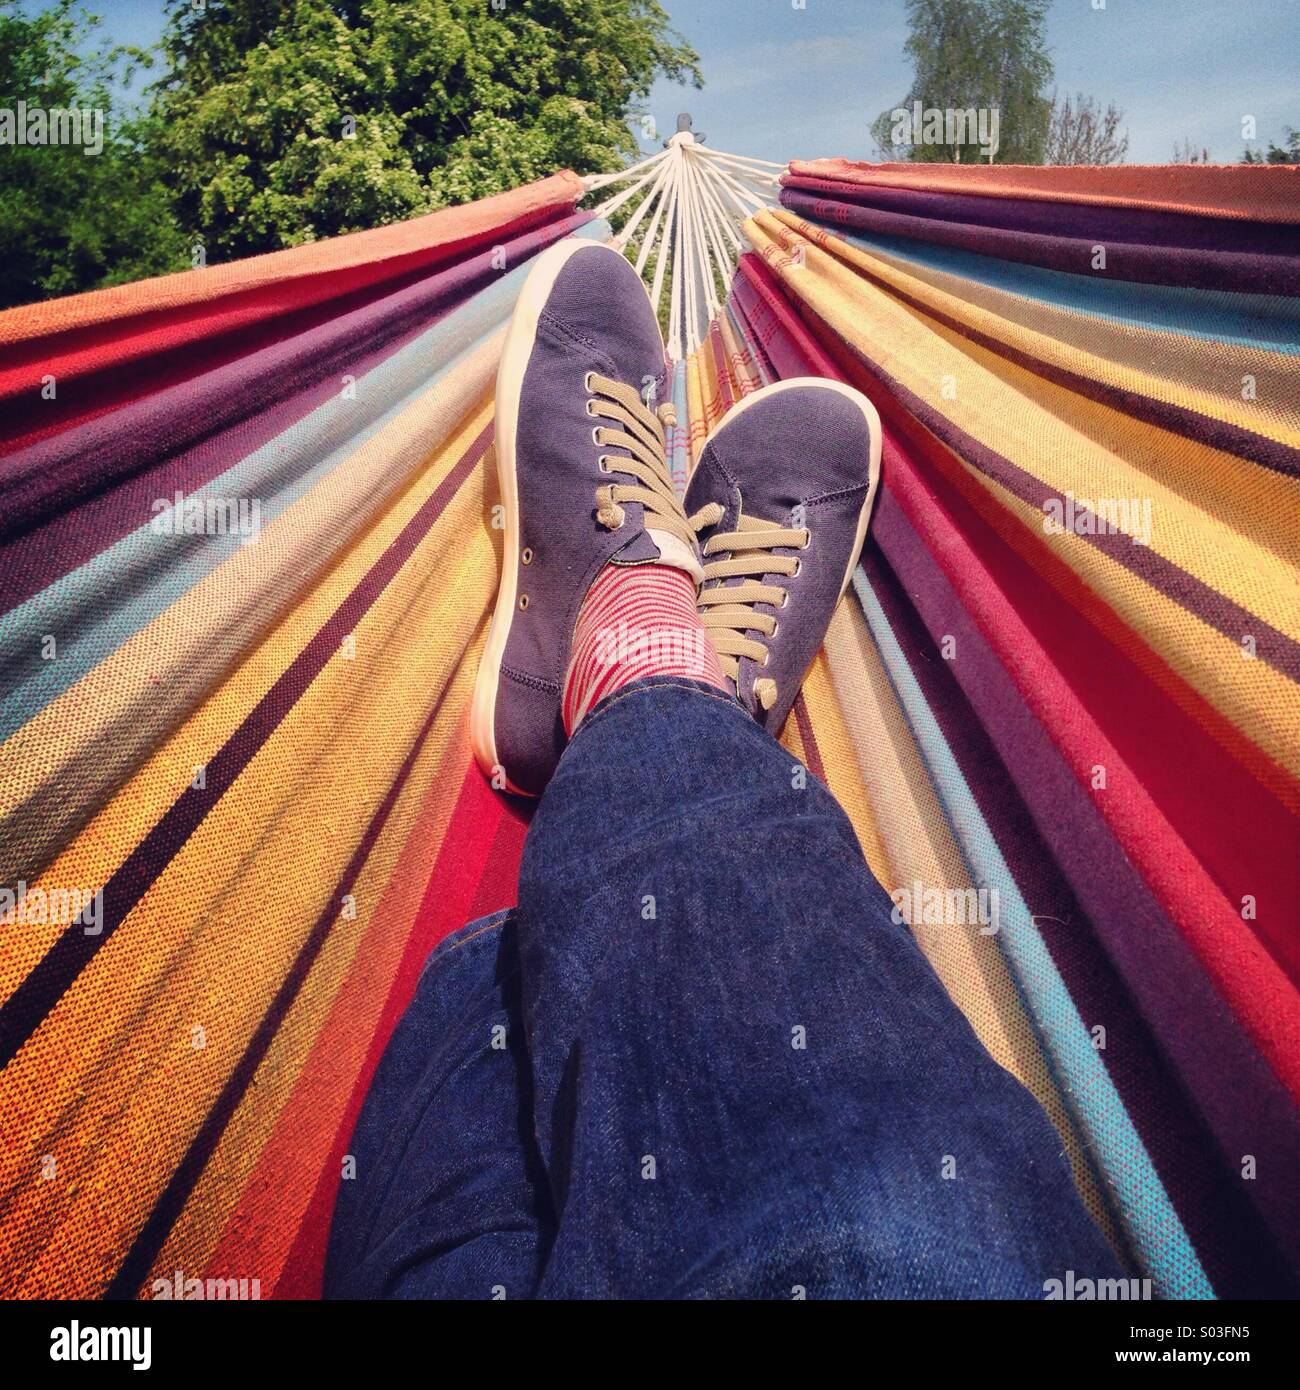 British Summertime arrives and lazy hammock days are afoot - Stock Image